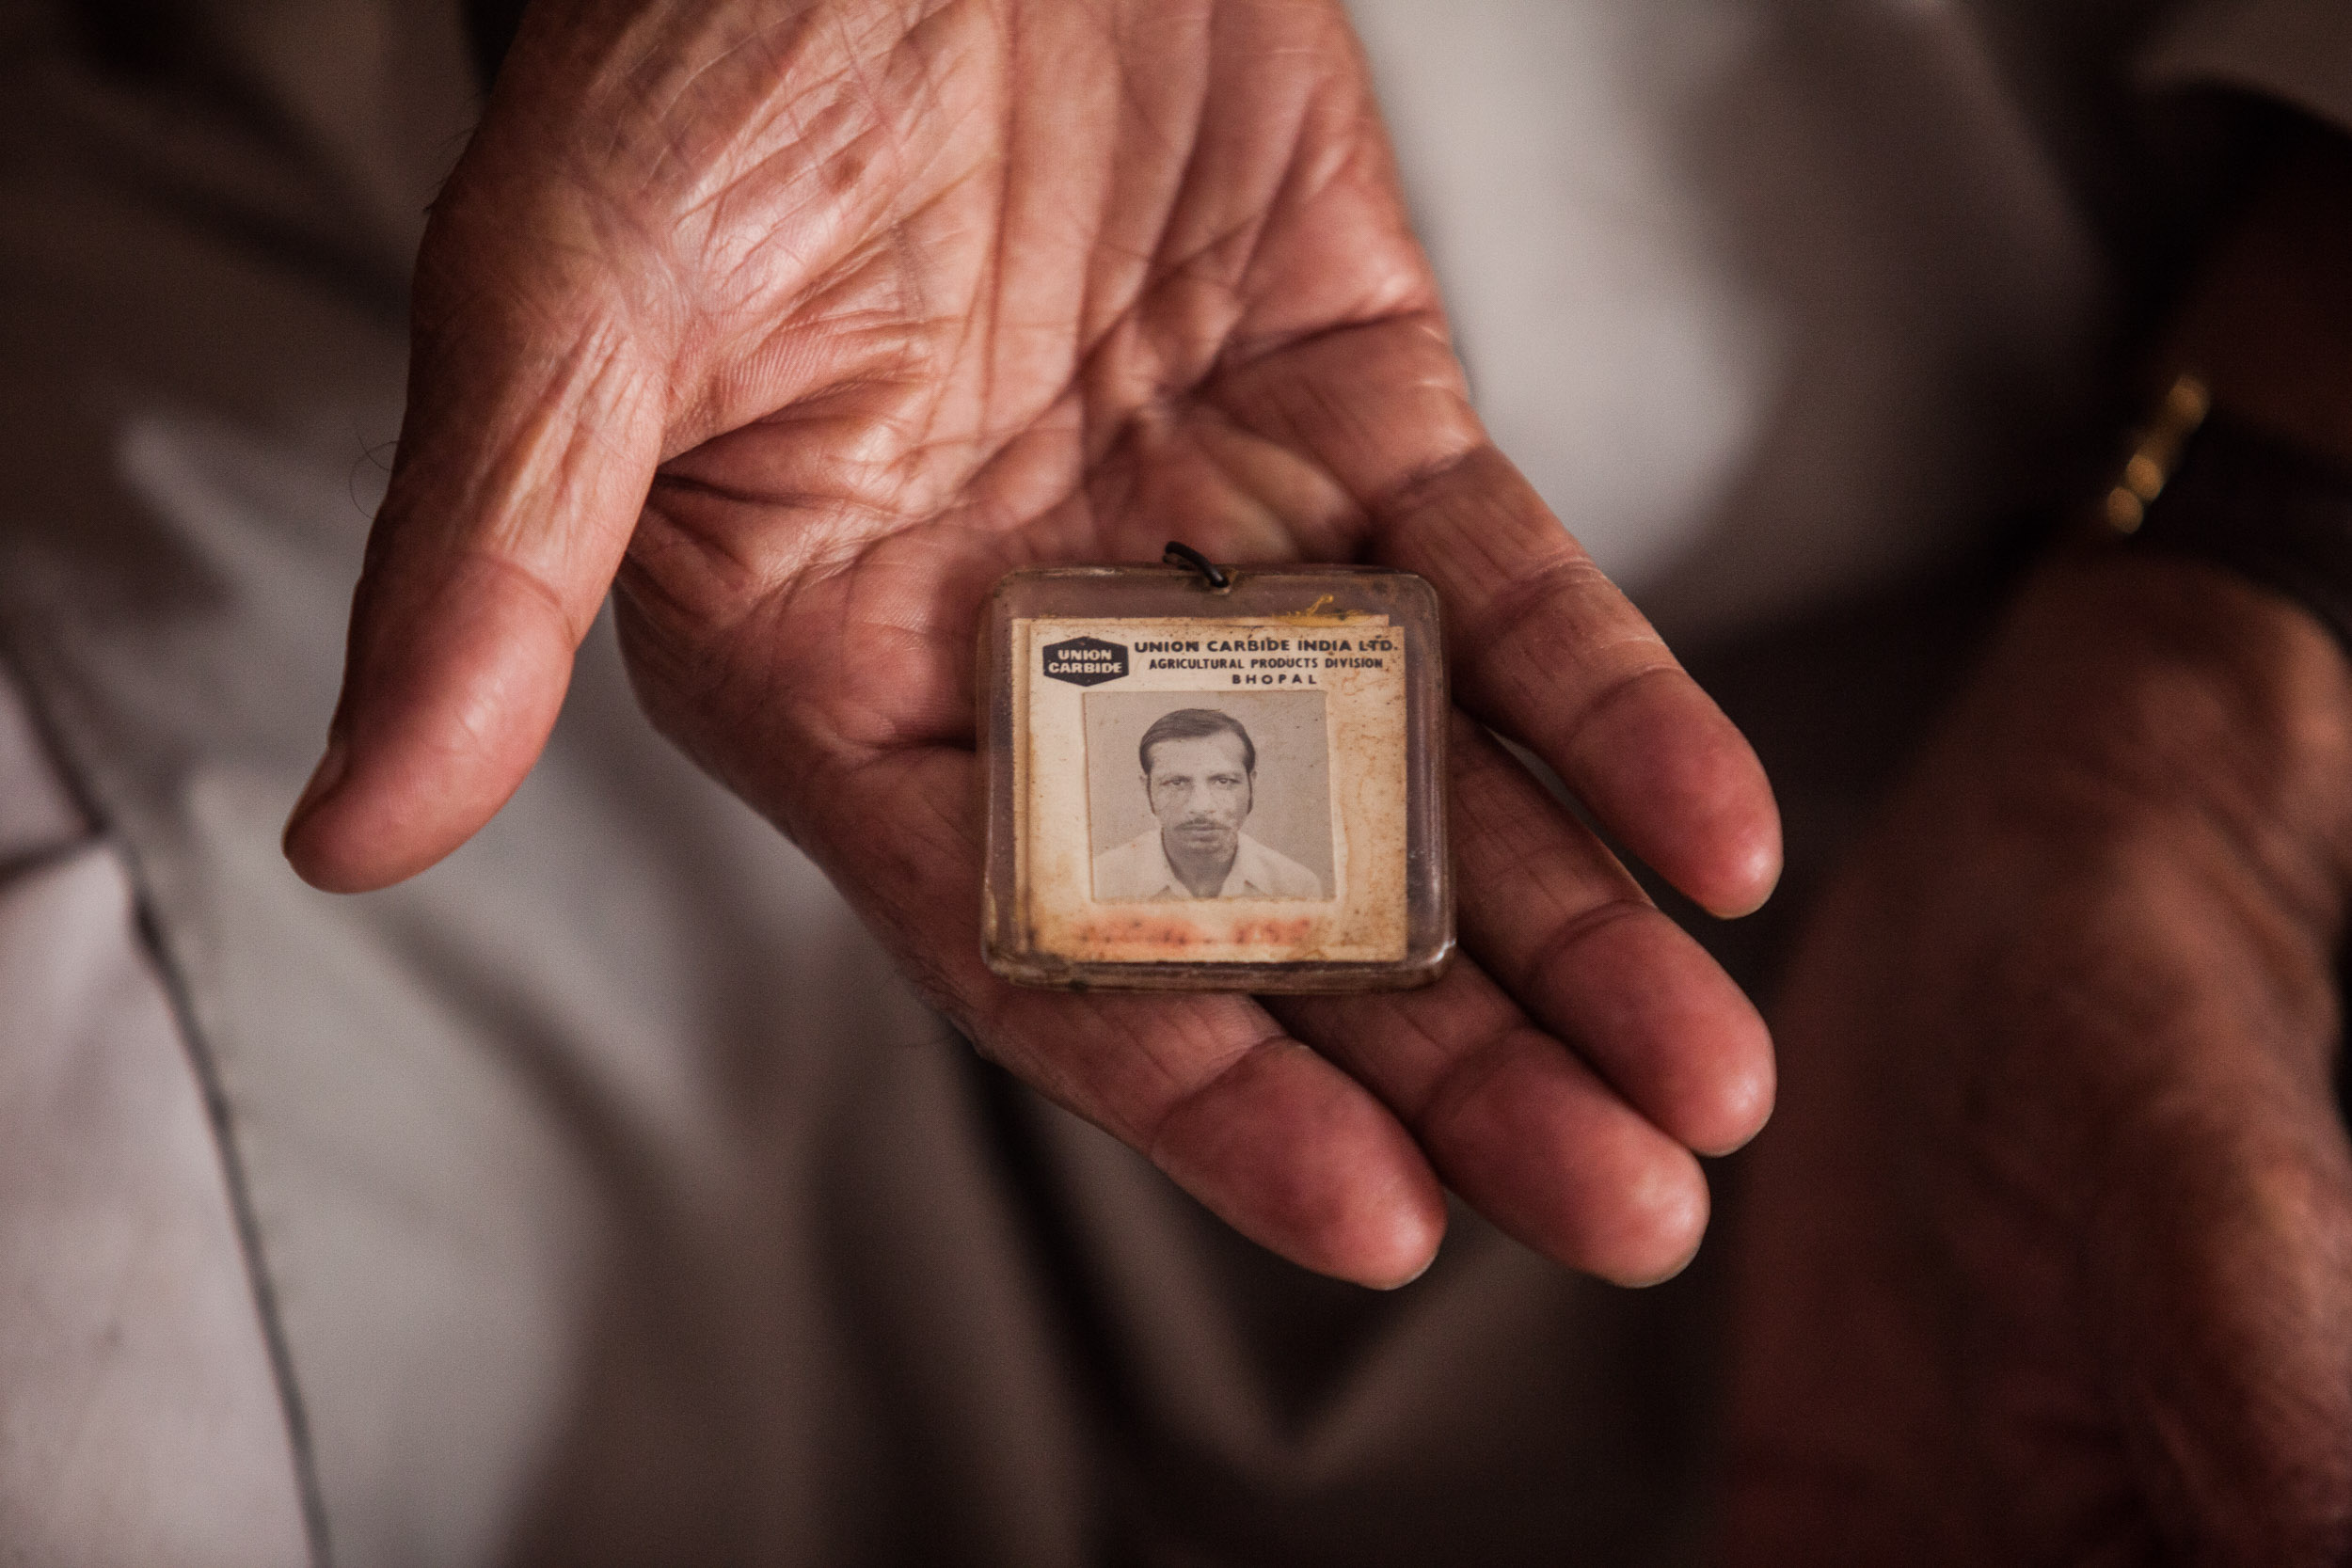 Mohammed Yaqub poses at home with his old Union Carbide card, which credited him as a factory worker